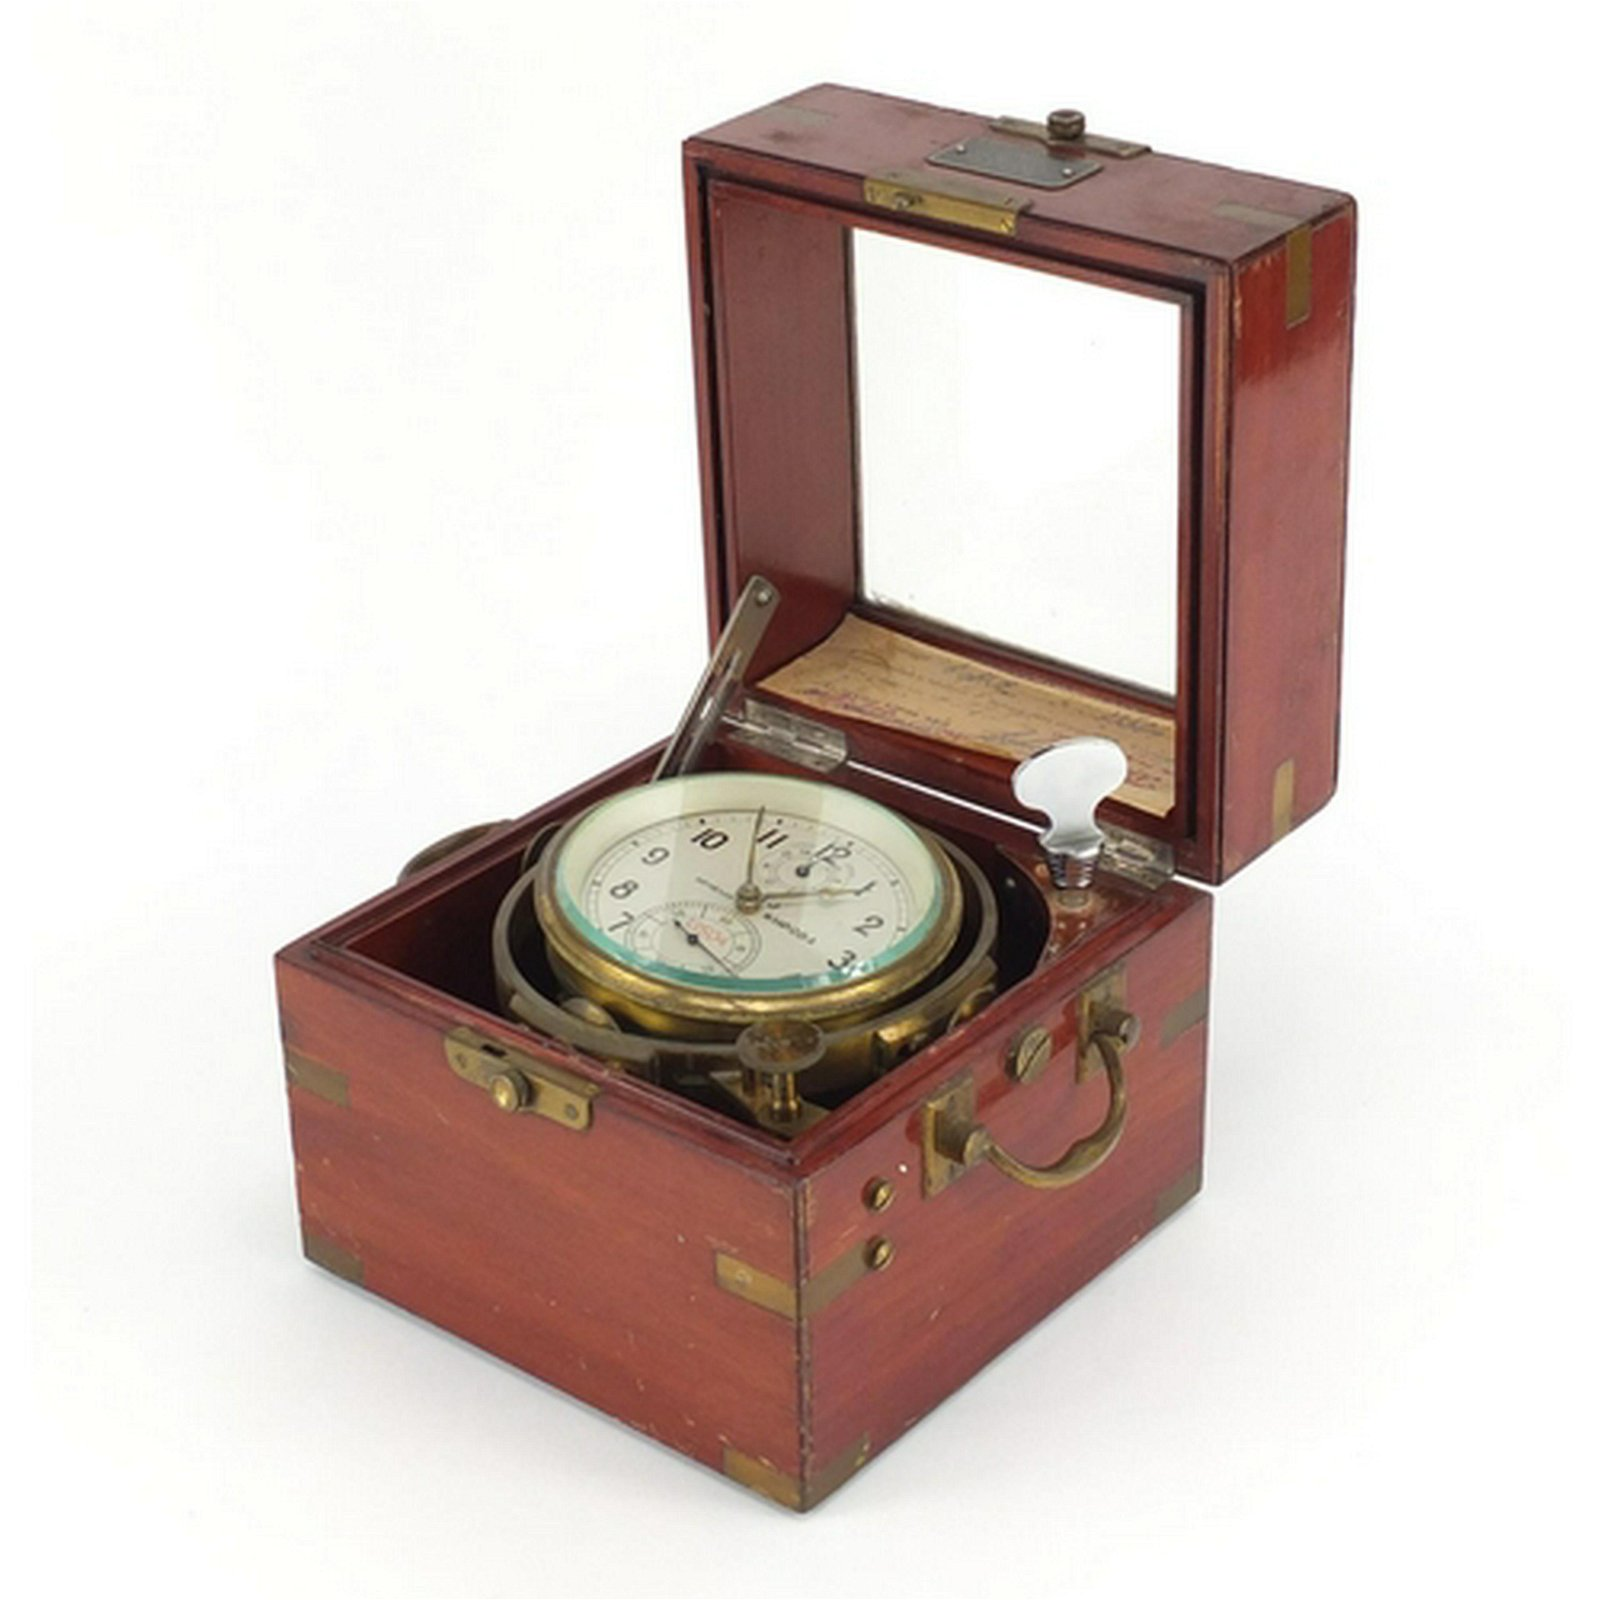 Russian two day marine chronometer, housed in a